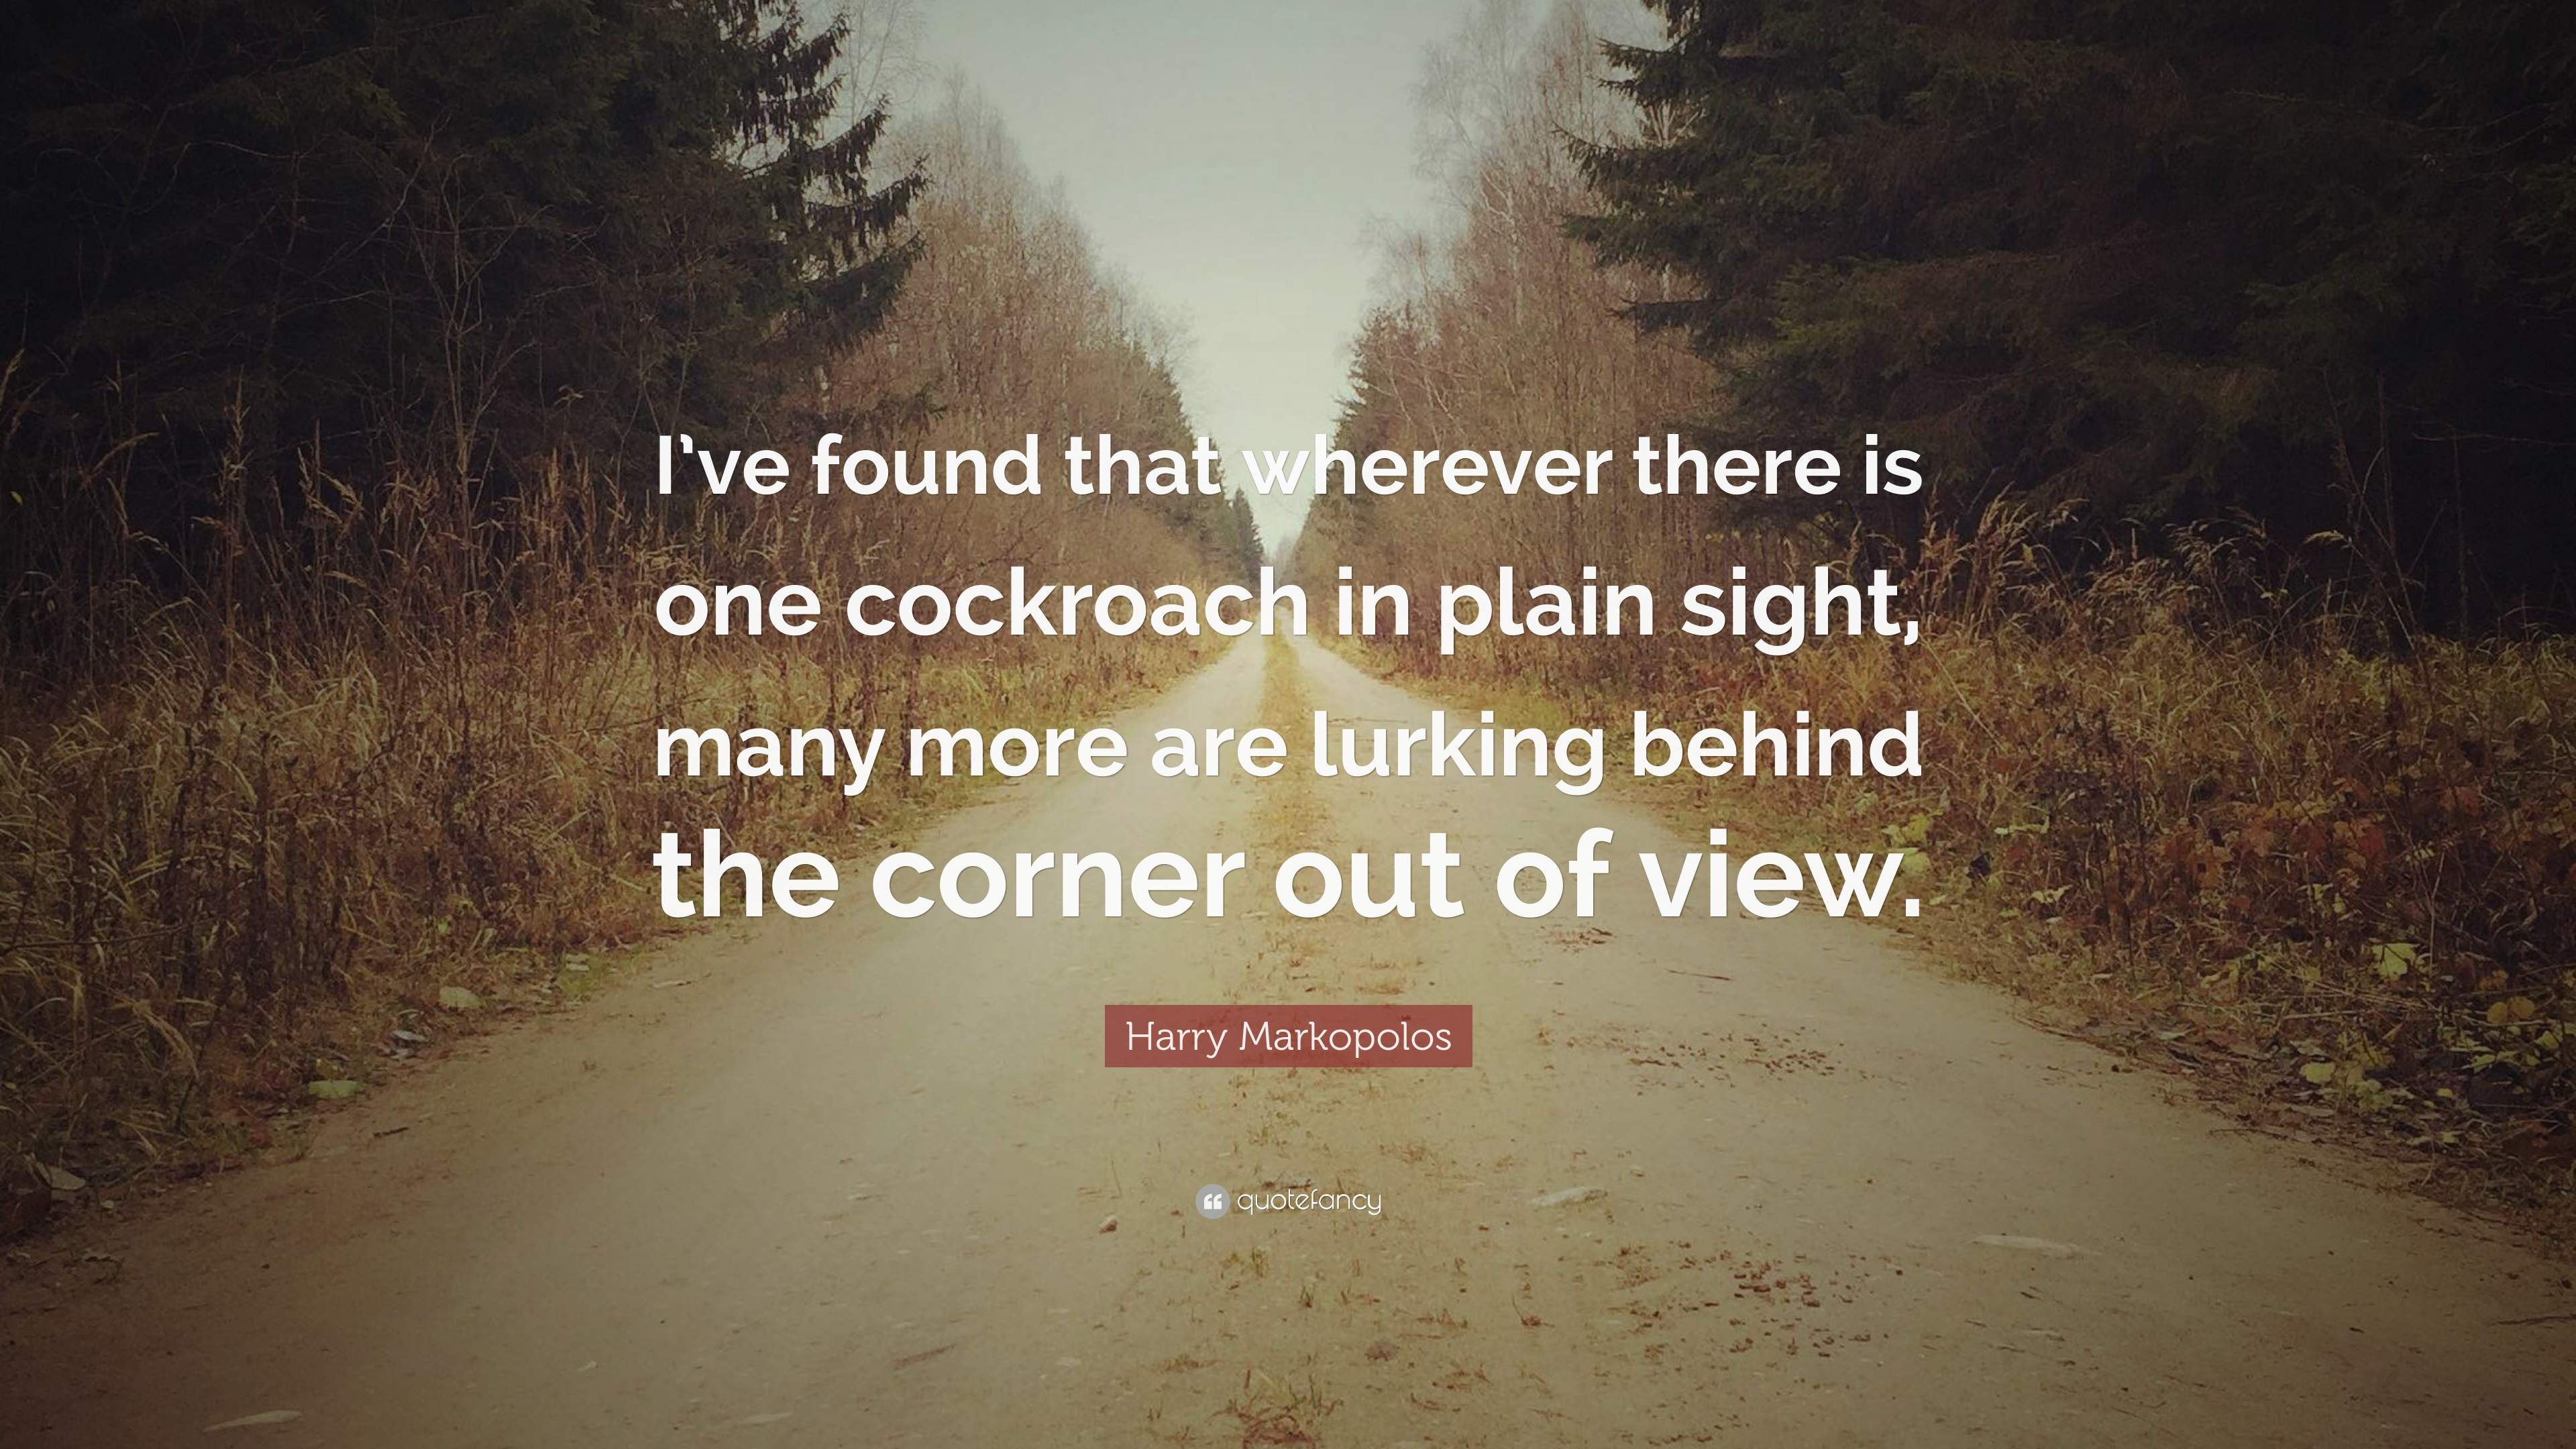 1621117 Harry Markopolos Quote I ve found that wherever there is one